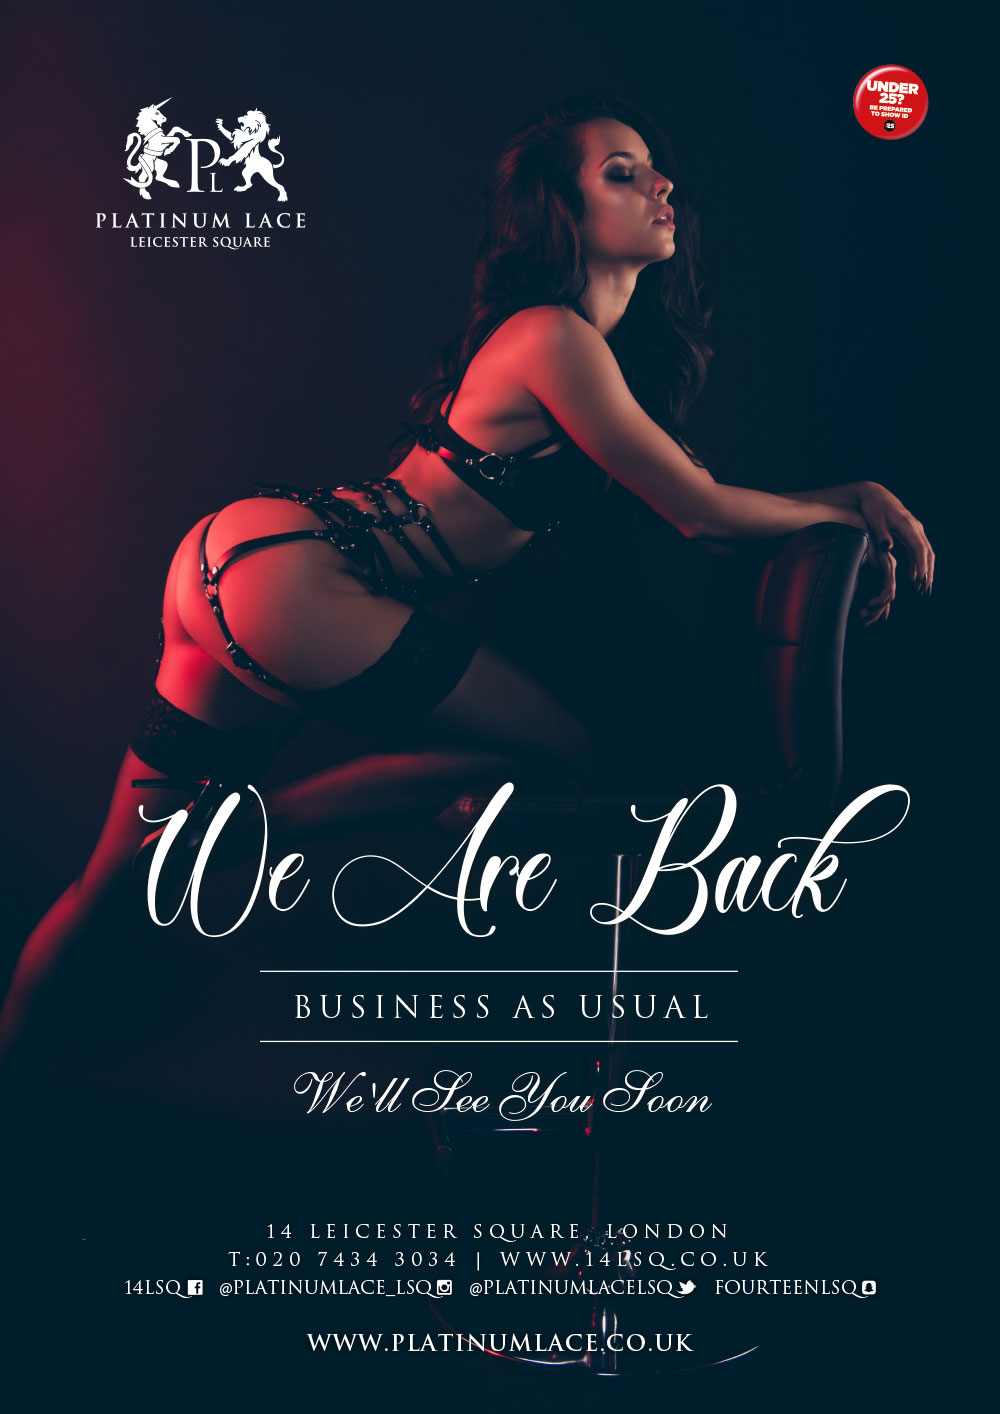 We are back at platinum lace Leicester Square